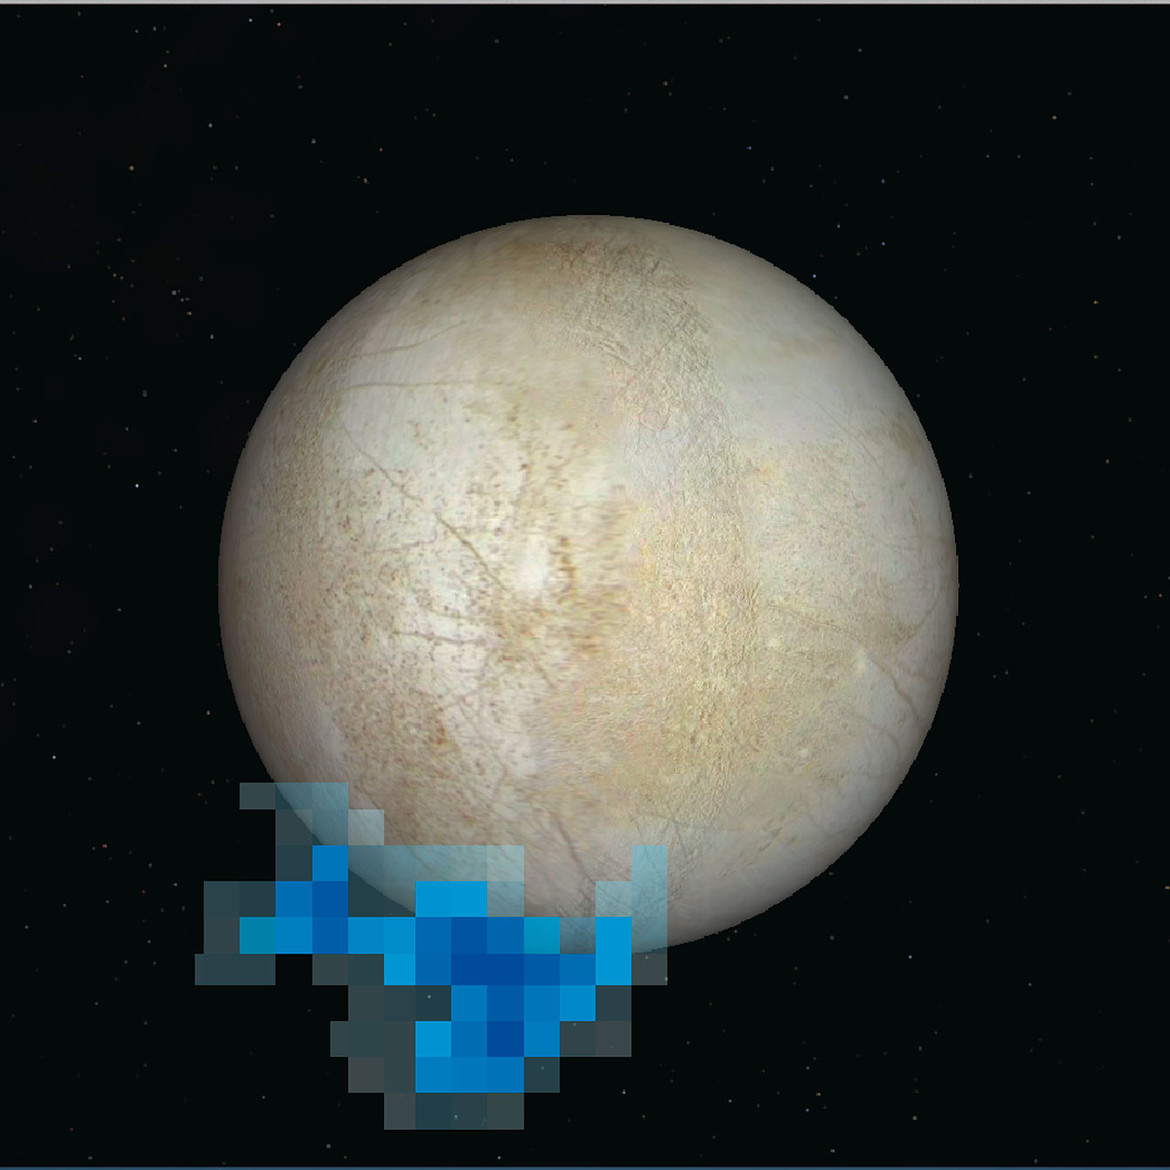 An image of Europa with the observations from Hubble superposed, showing where ultraviolet light was seen. Credit:NASA/ESA/L. Roth (Southwest Research Institute and University of Cologne, Germany)